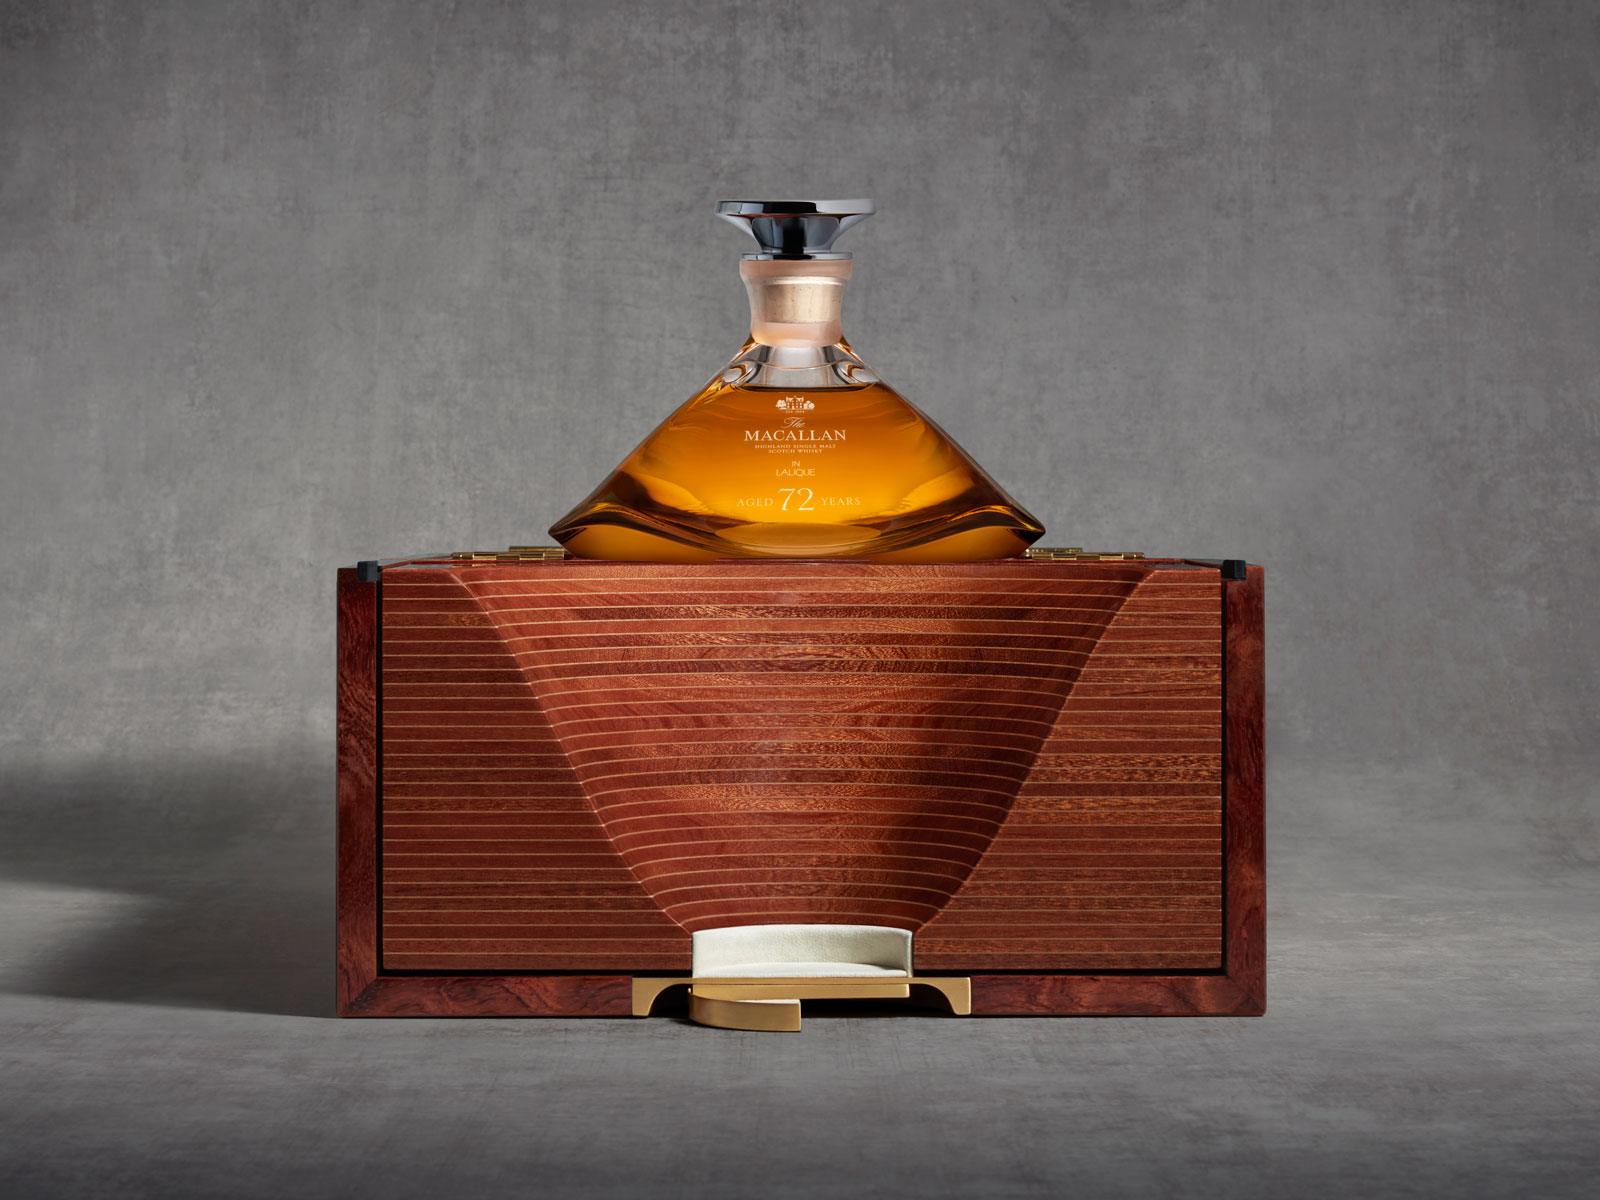 The Macallan Unveils Its Oldest Scotch Ever, Aged 72 Years